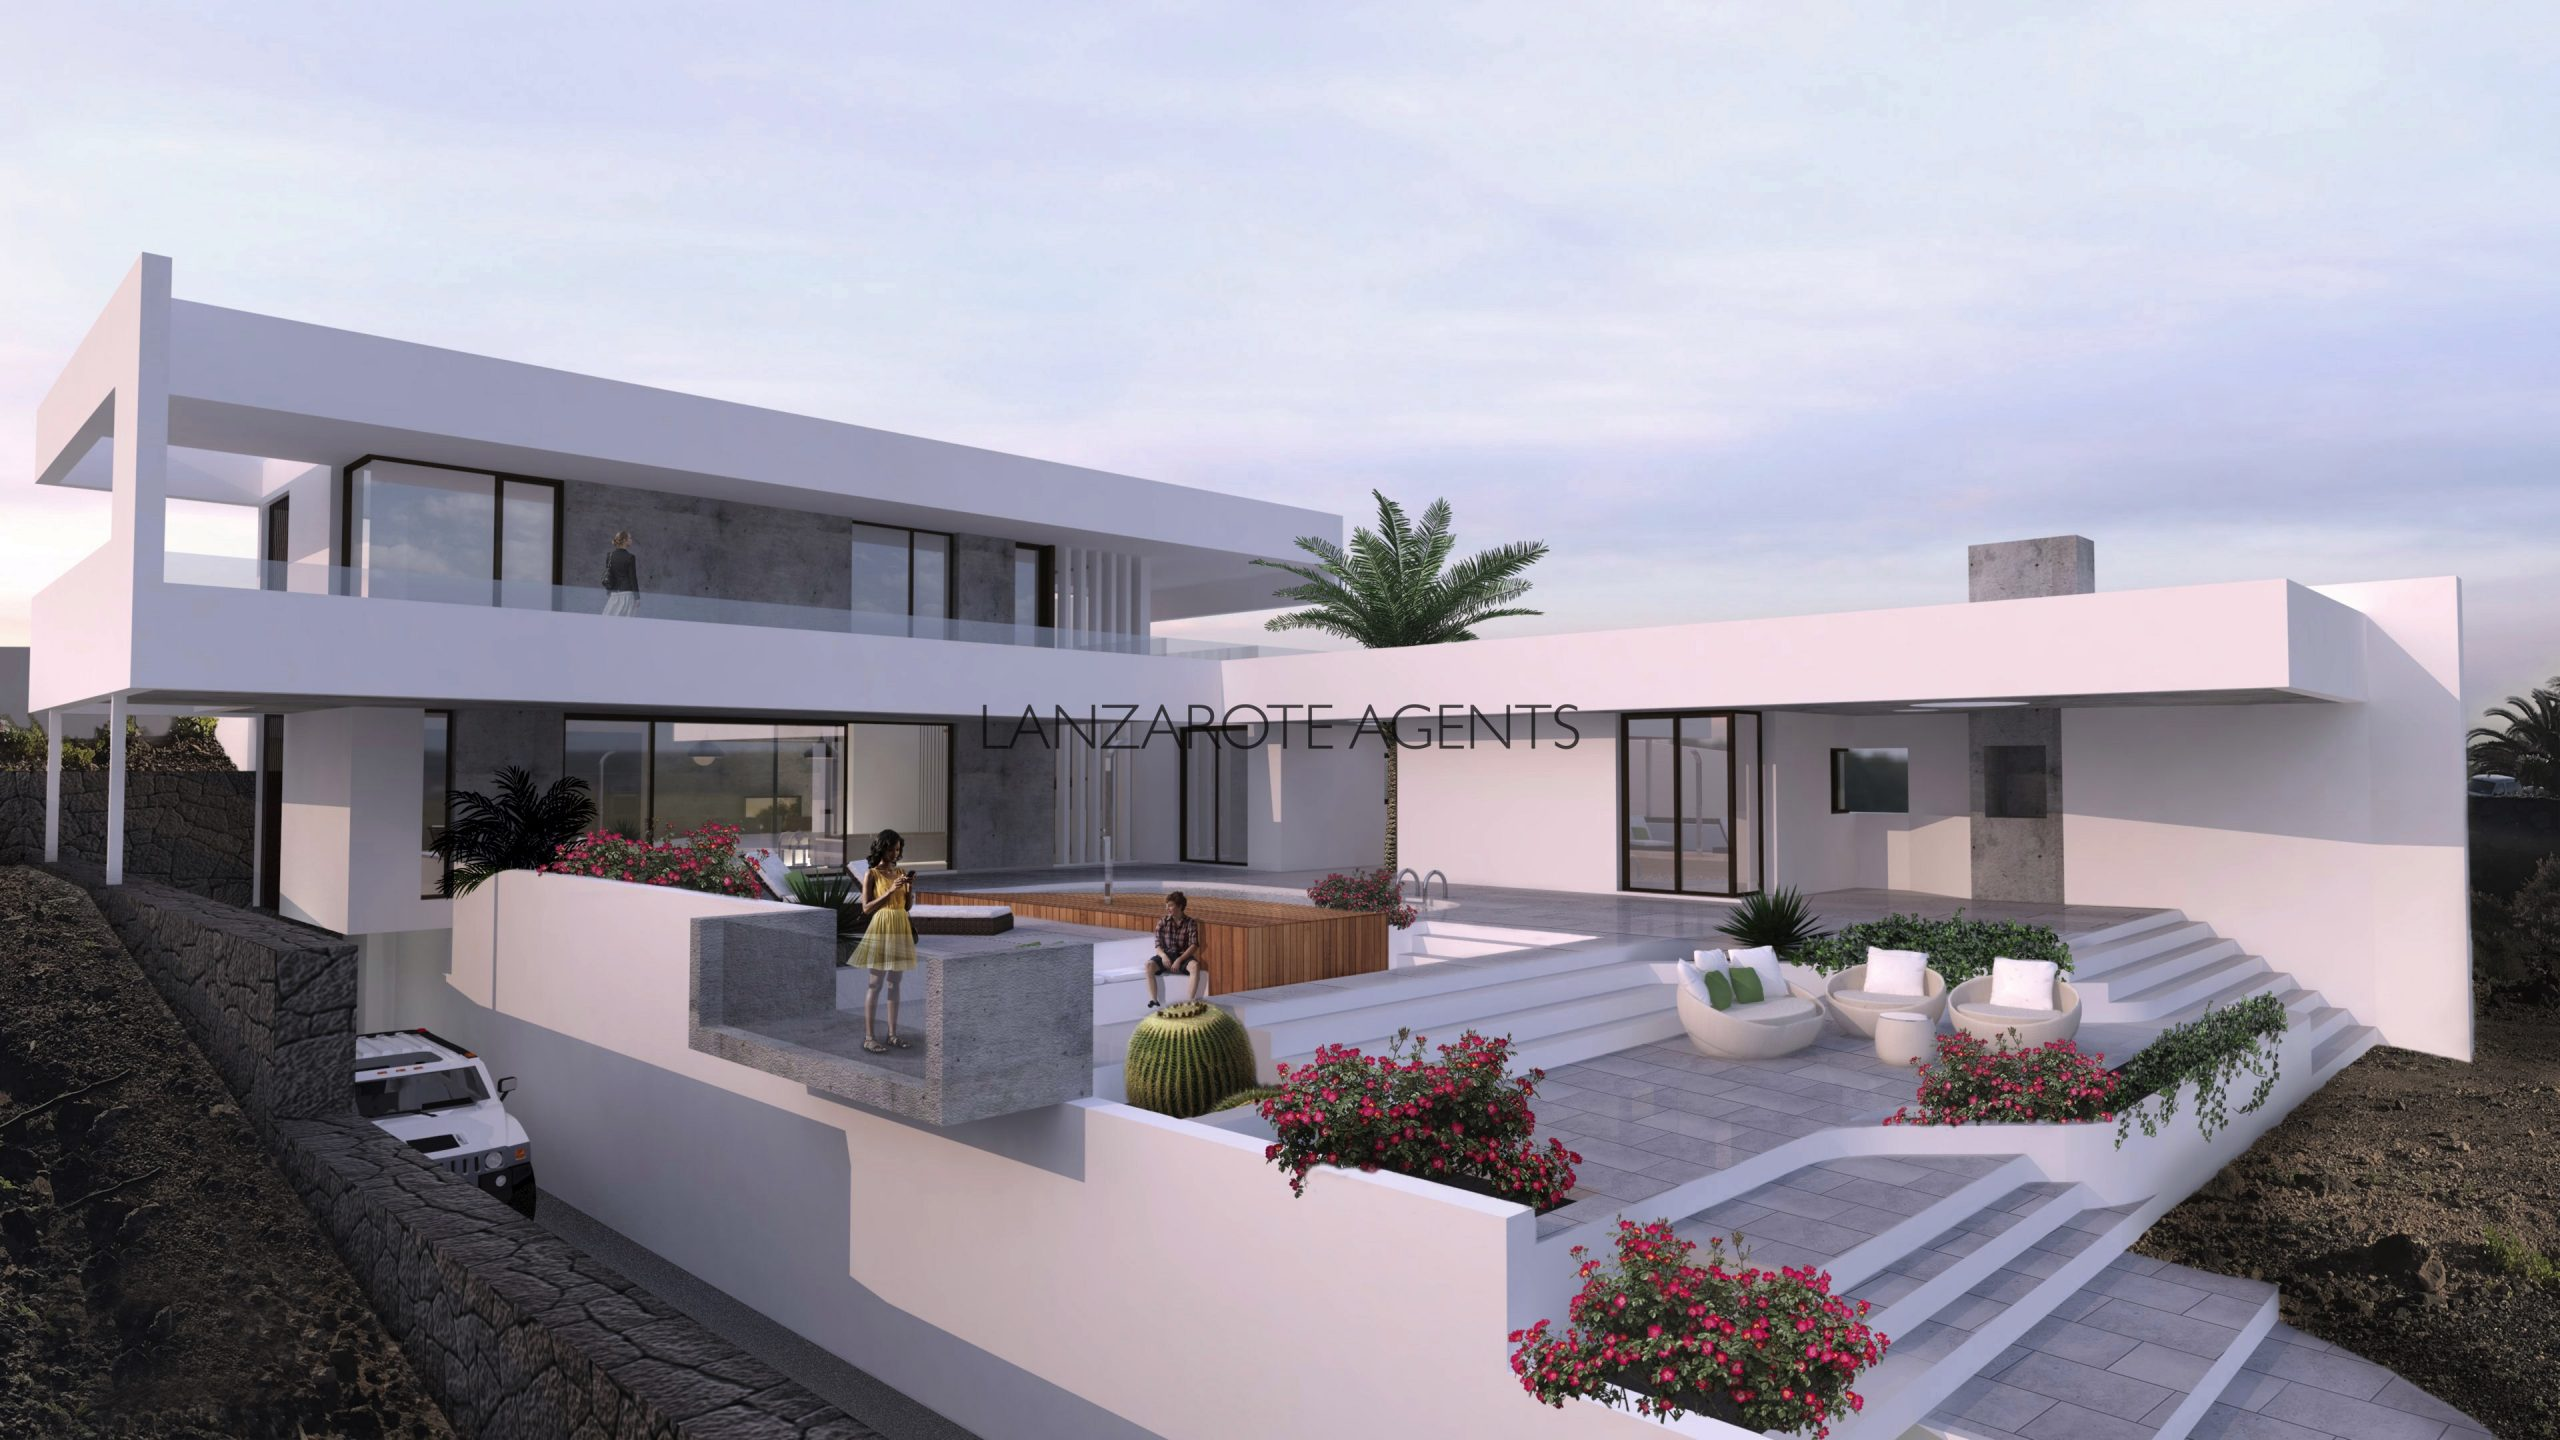 Best Plot of Land in Playa Blanca with Stunning Sea Views and Building License, Architect Project Ready to start Building a Magnificent Modern Villa